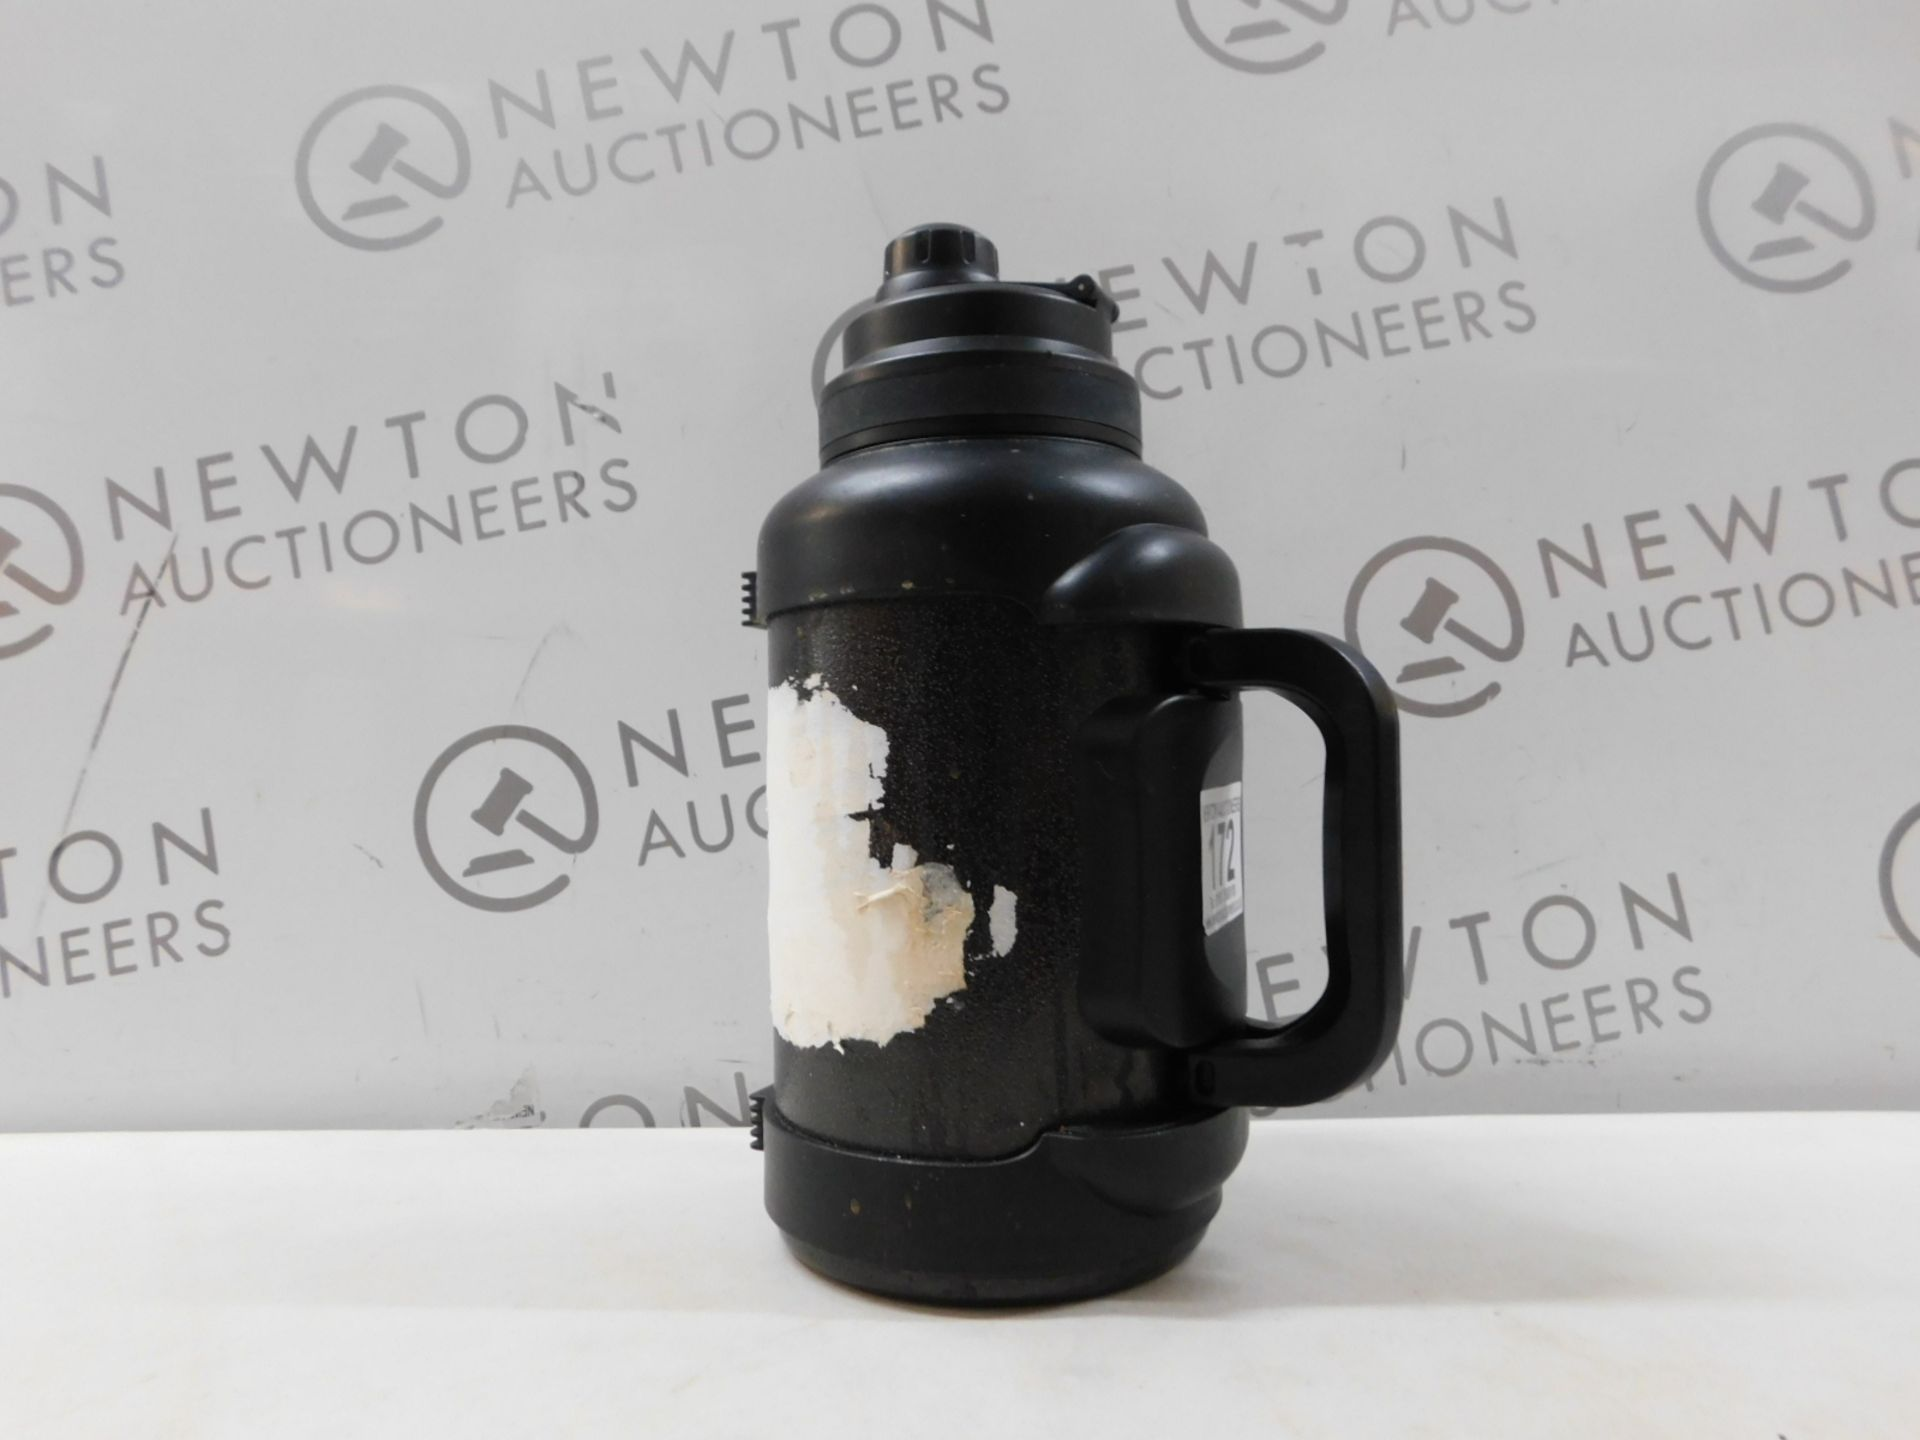 1 MANNA TITAN 2.5L STAINLESS STEEL 48HR VACUUM INSULATED JUG FLASK RRP £44.99